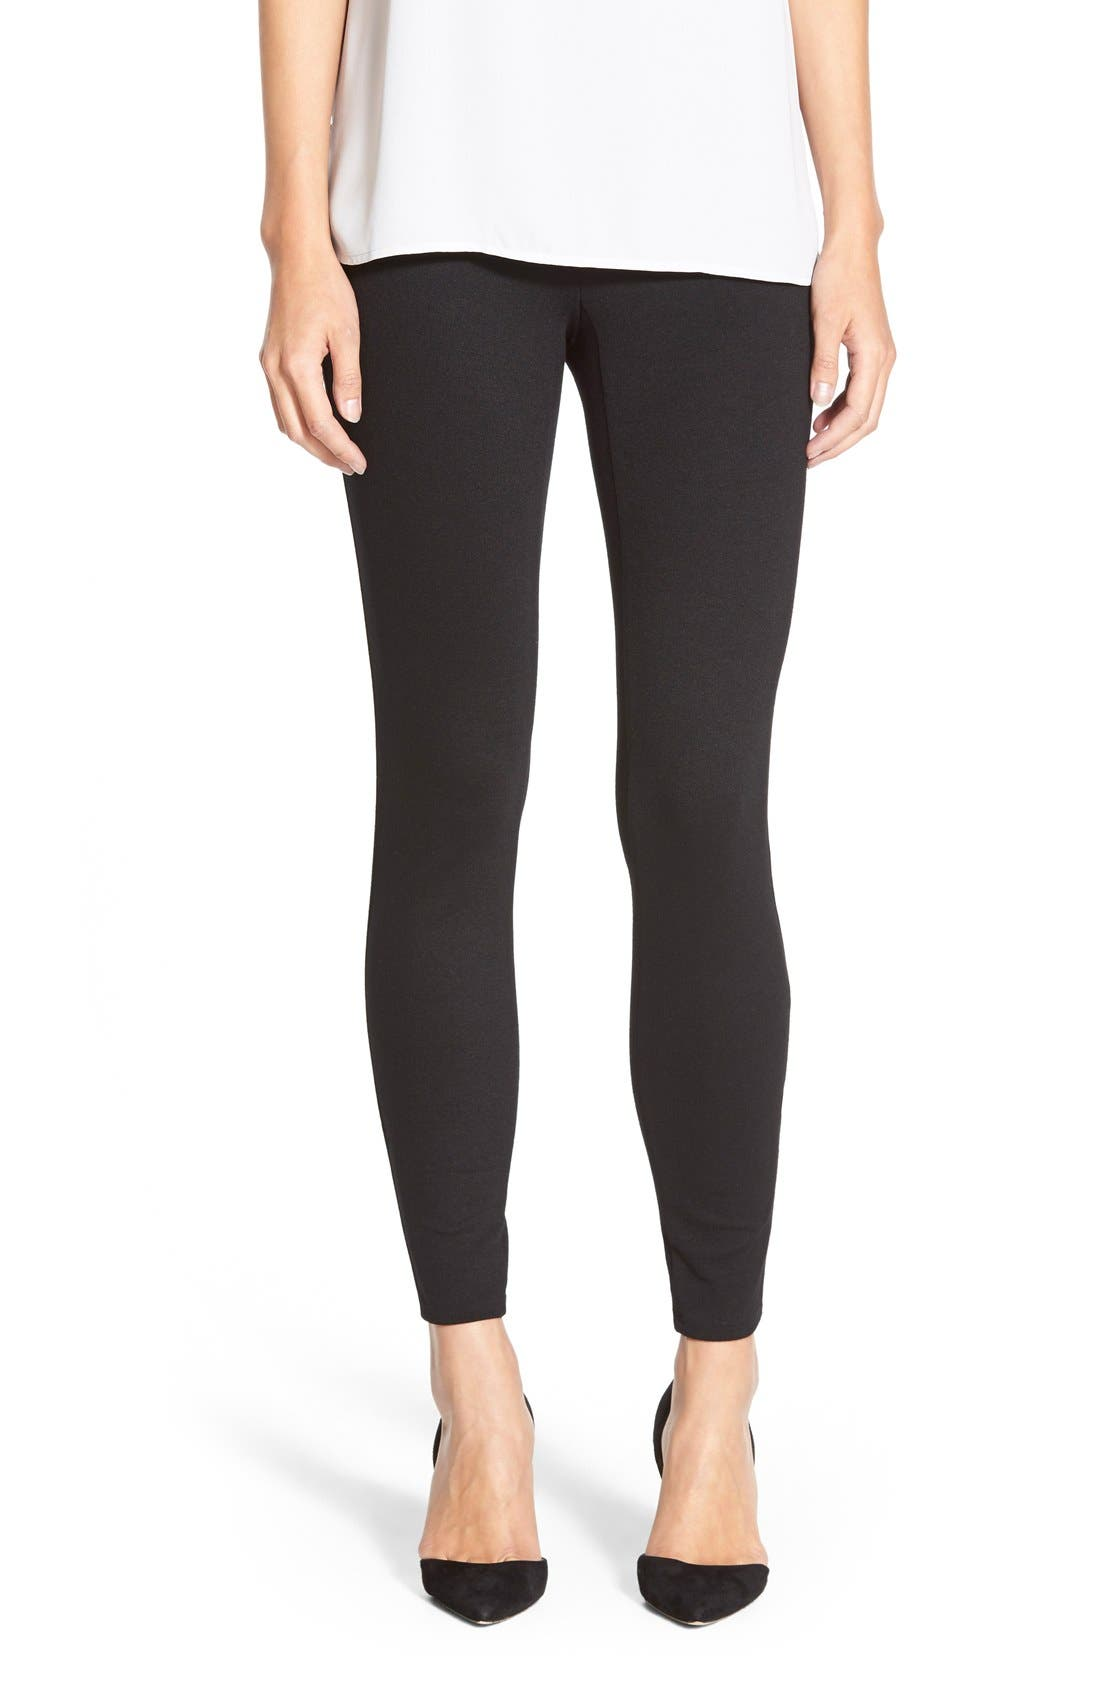 Bailey 44 'Pfeifer' Ponte Knit Leggings